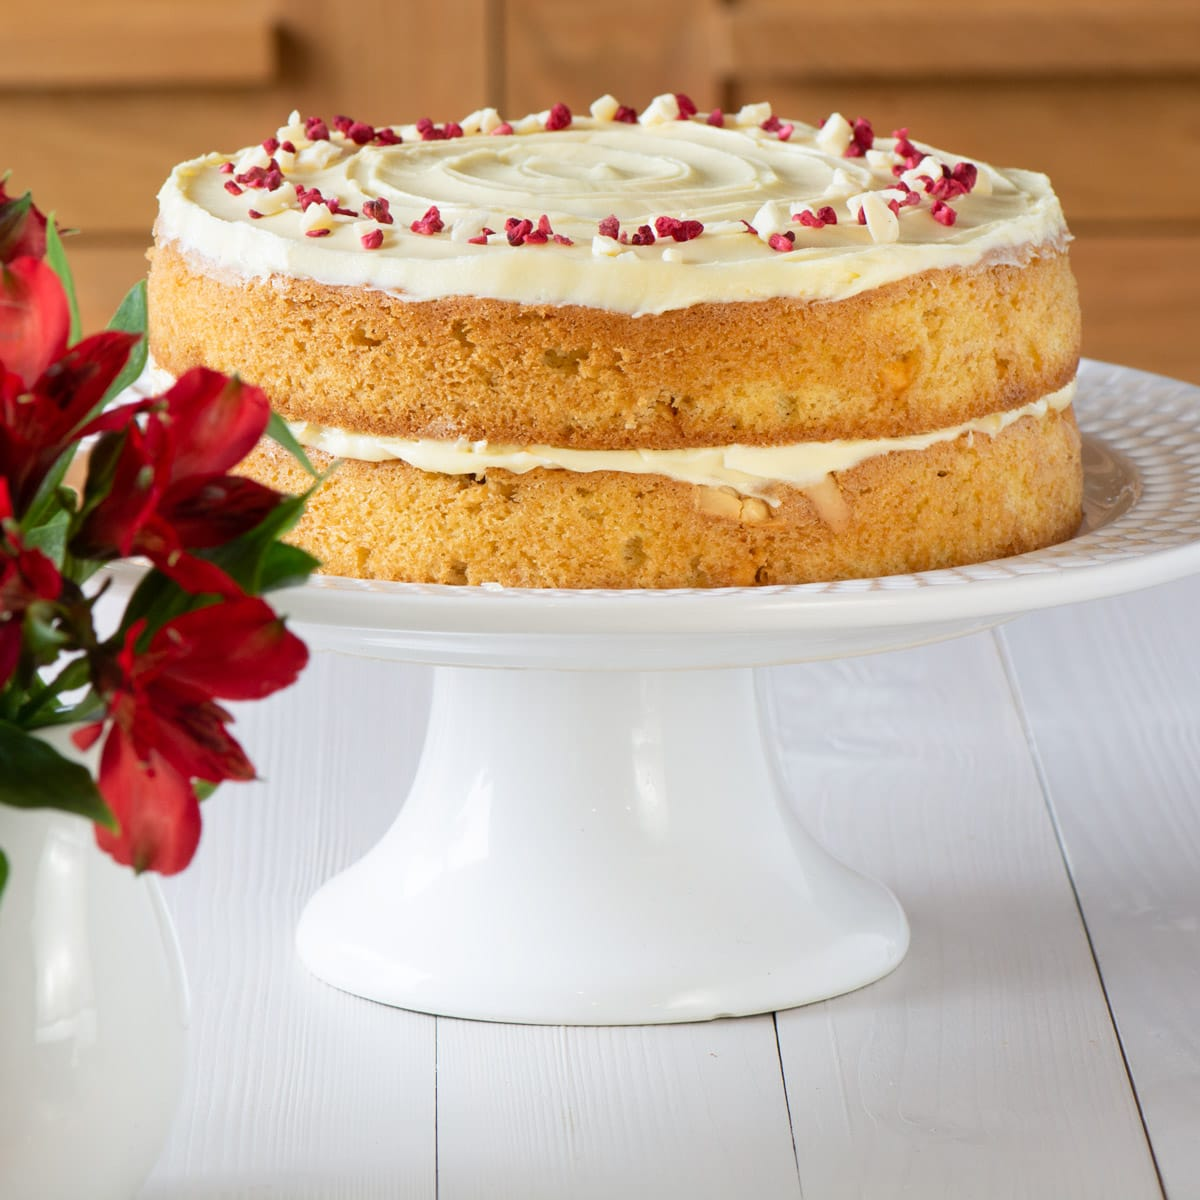 A white chocolate cake on a cake stand.